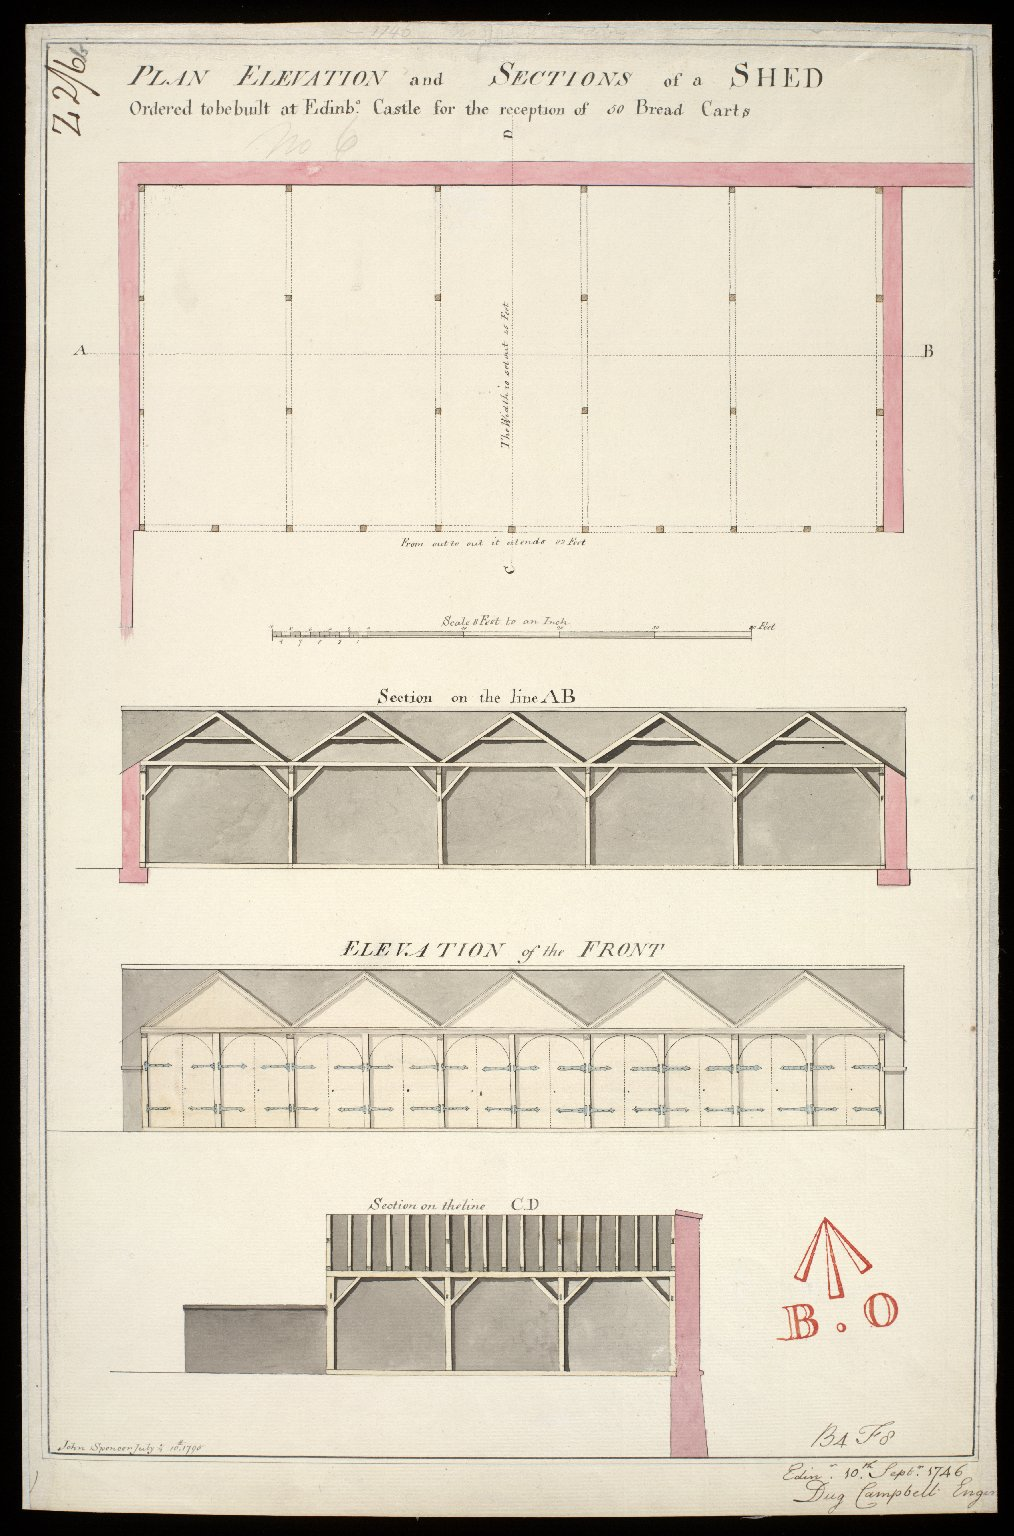 Plan elevation and sections of a shed : ordered to be built at Edinbo. Castle for the reception of 50 bread carts [copy] [1 of 1]